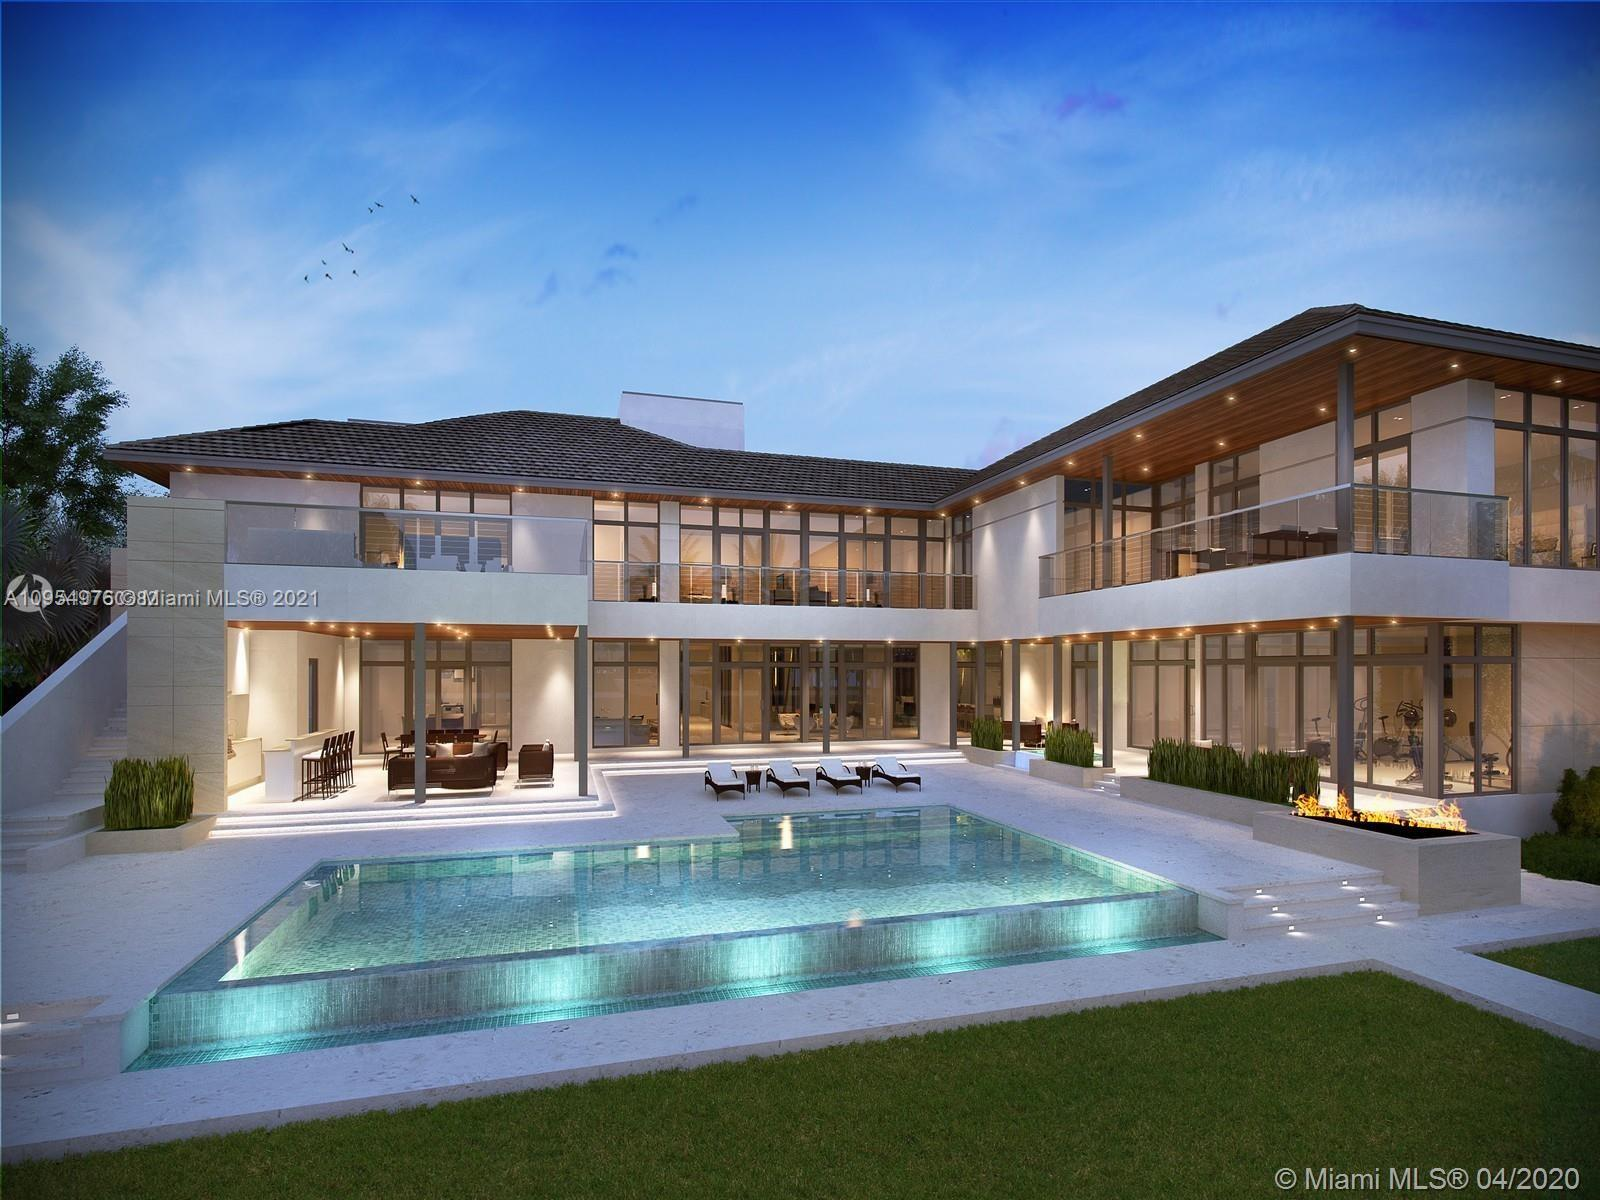 This captivating, modern custom estate is being completed by Mocca Construction in the exclusive Gables Estates Community. Open layout with privacy in mind, residence designed by Ramon Pacheco checks off every box. Features 9 beds, 11 baths and 2 half baths for a grandly scaled 20,726 SF of unrivaled living. Poured concrete walls and roof, this residence is a must see to appreciate the quality of construction and design. Oversized bedrooms, 2 bedroom staff quarters, library/office, spa/yoga/fitness studio, elevator, glass wine cellar and so much more fill this incomparable home. 220 FT of water frontage with a brand new 140 ft dock add to the list of luxuries to this sophisticated and unique opportunity. Expected completion Summer 2021.